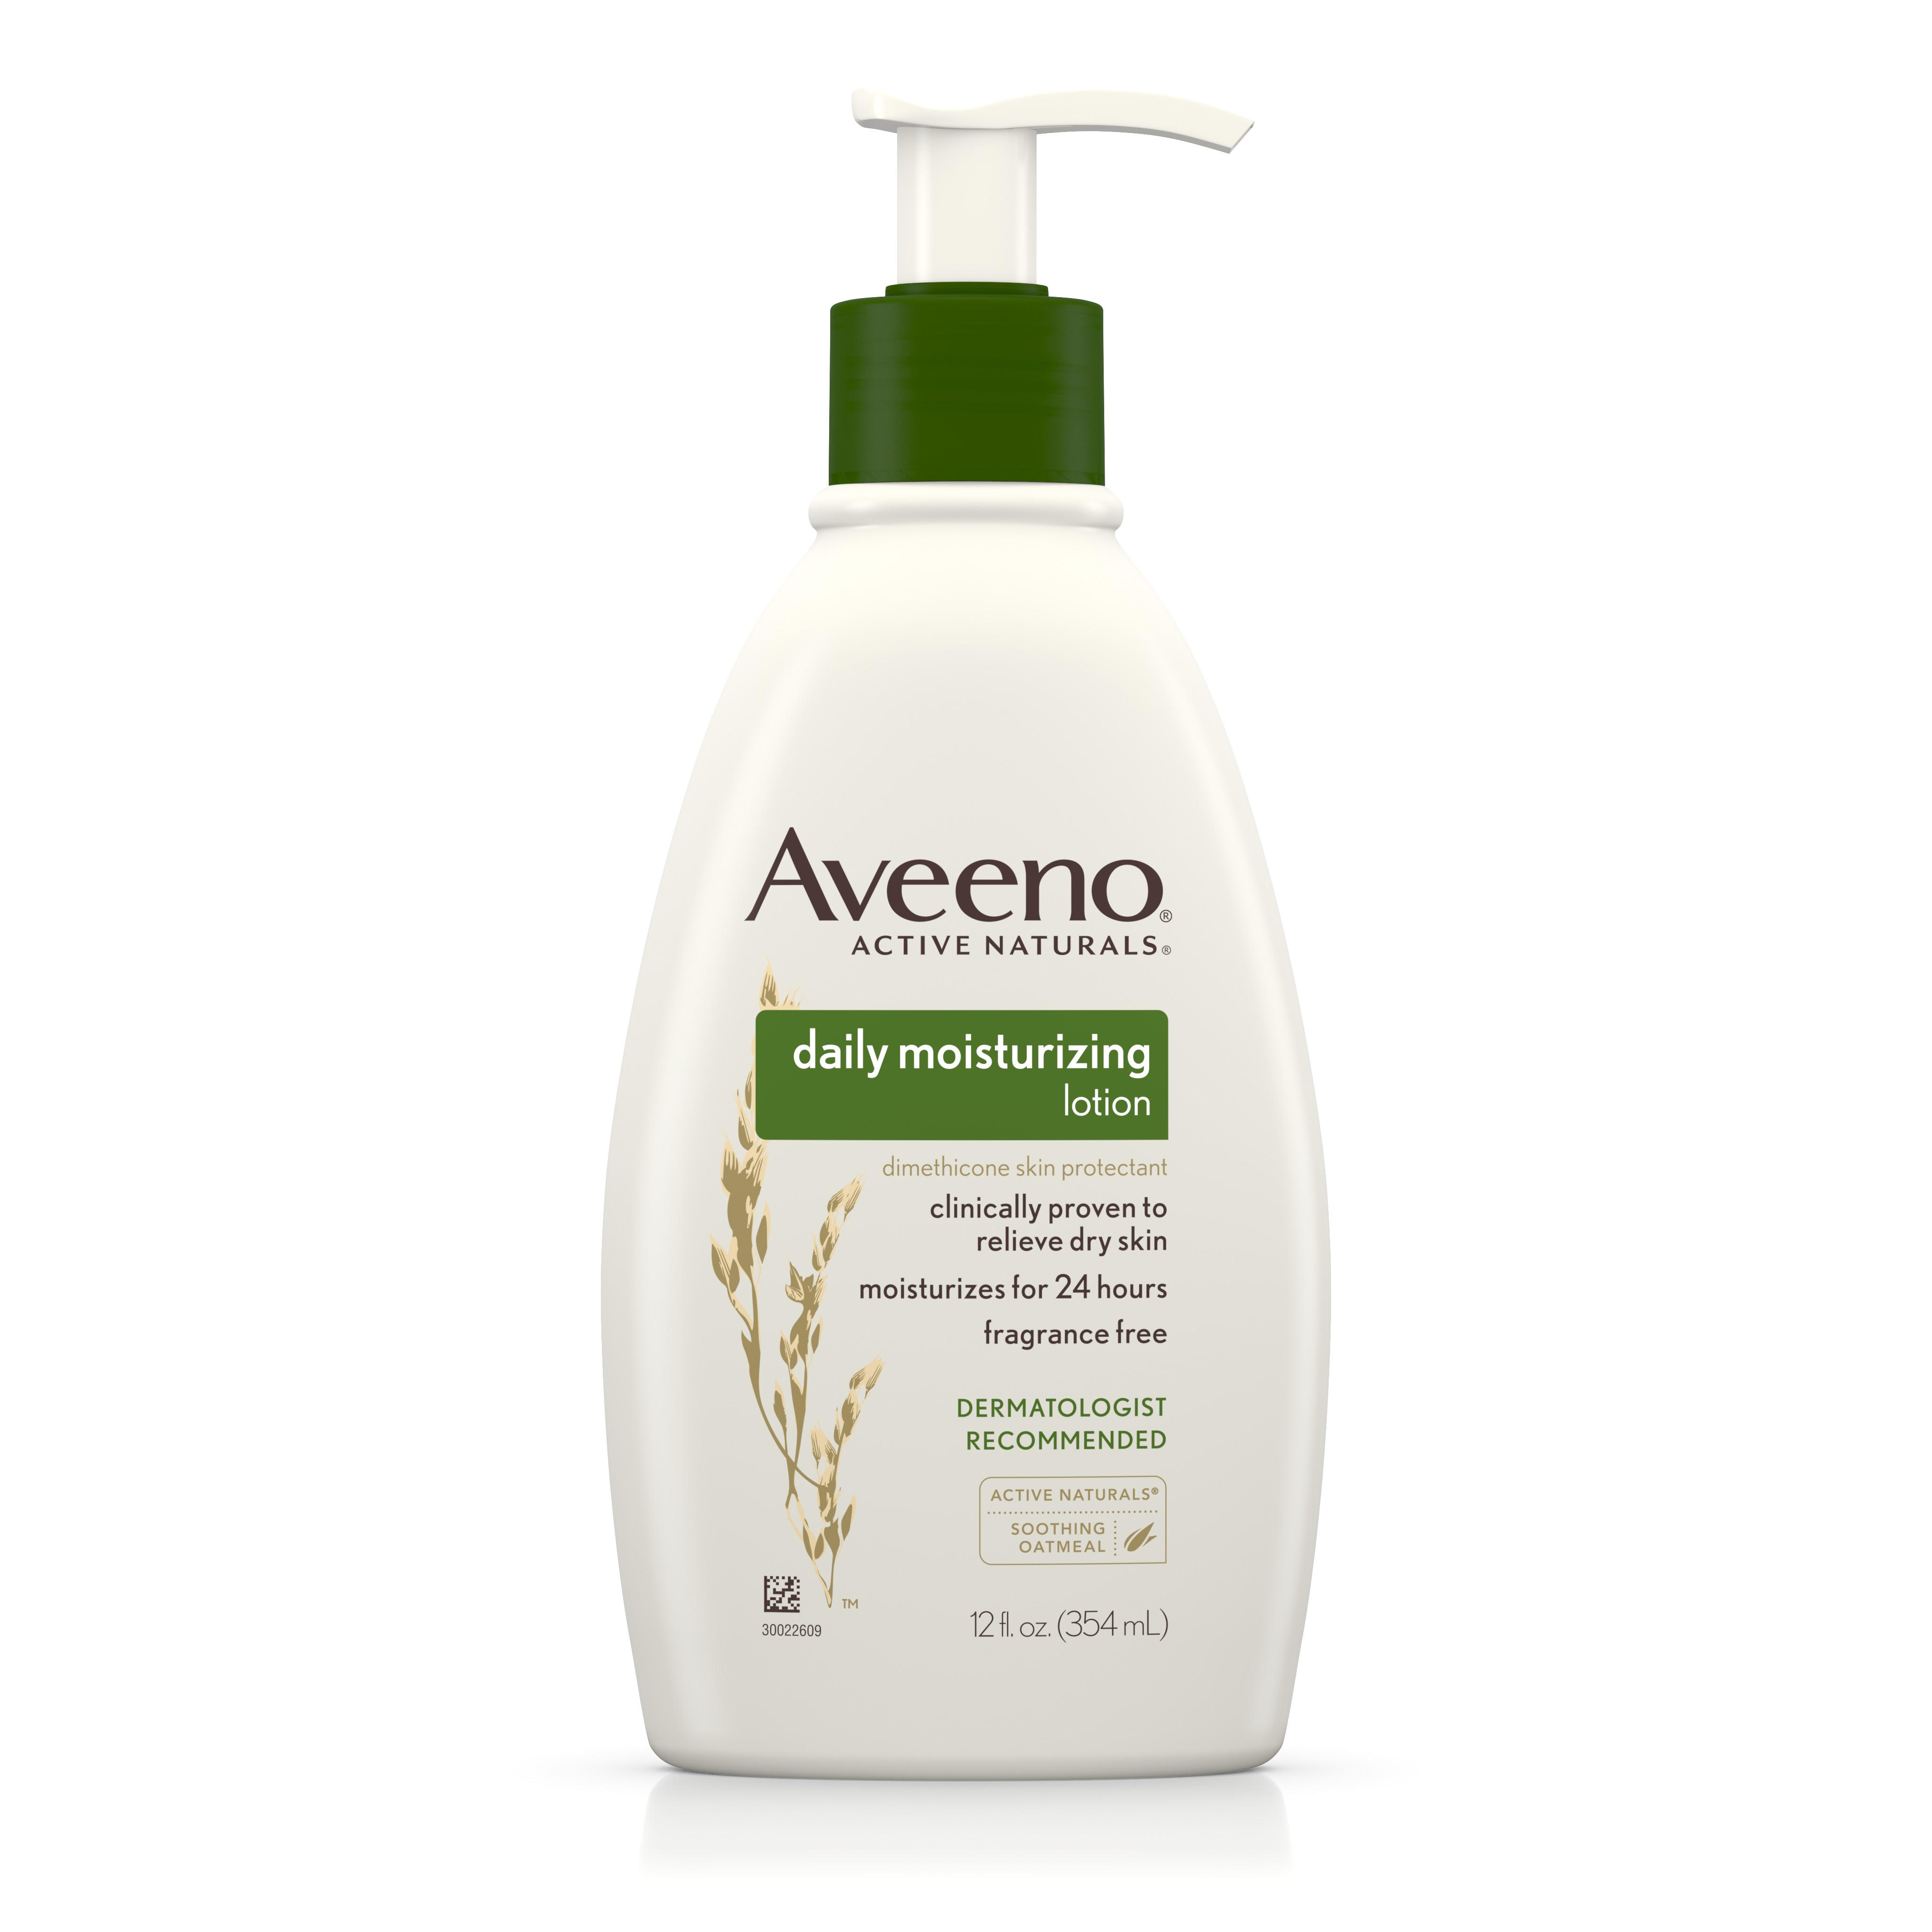 Aveeno Daily Moisturizing Lotion For Dry Skin, 12 Fl. Oz - Walmart.com